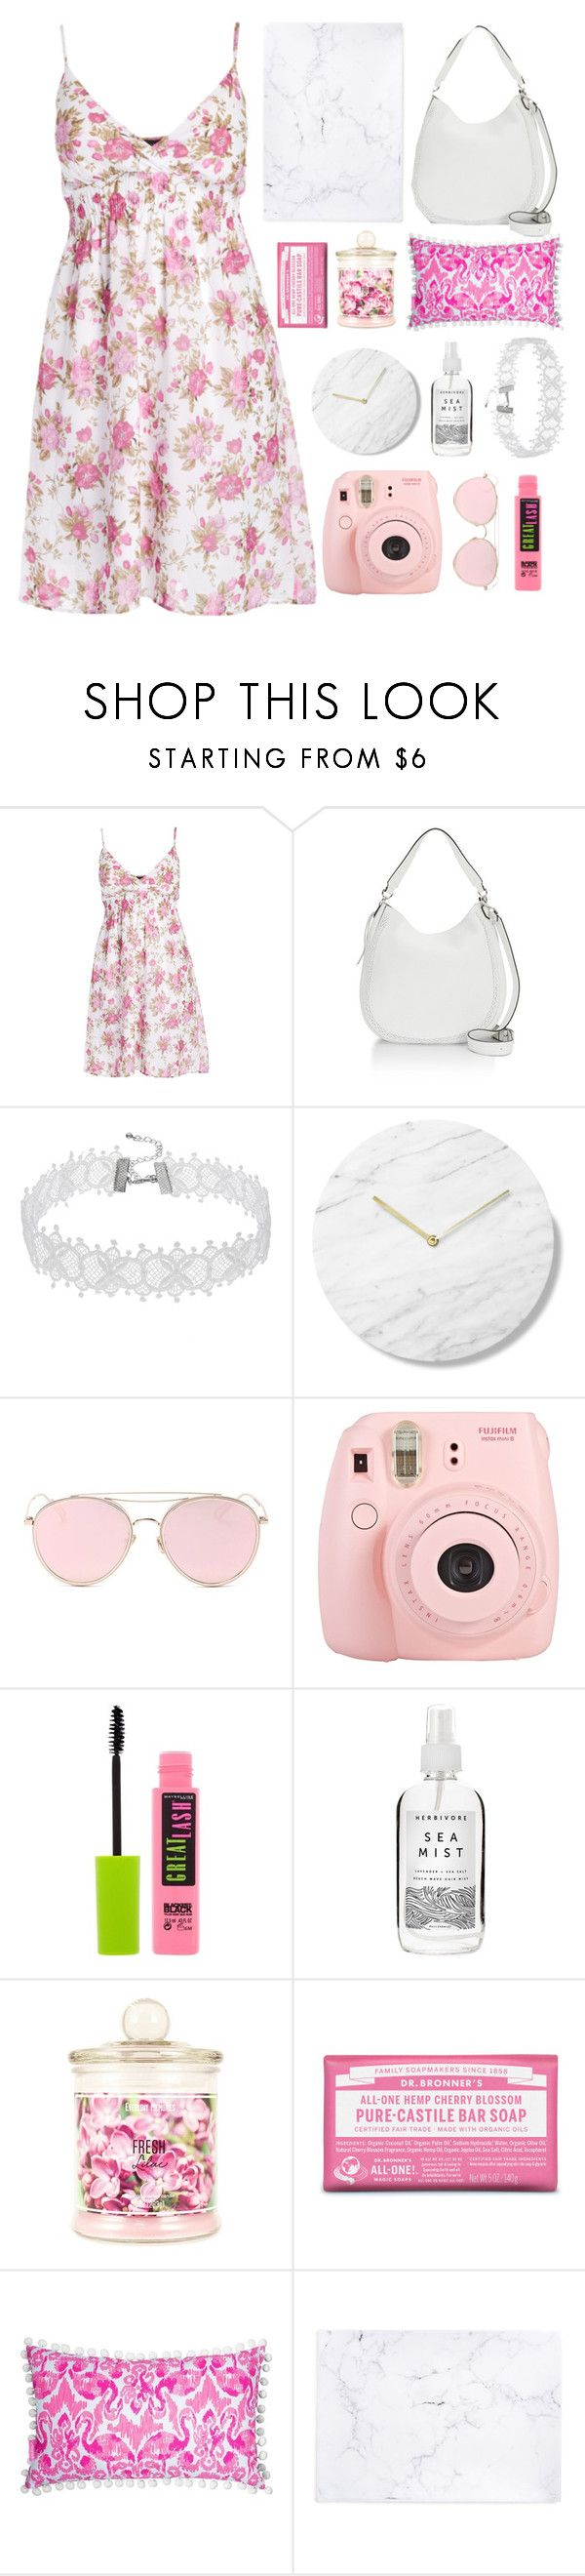 """""""Pink Petals"""" by madeline-jm ❤ liked on Polyvore featuring Rebecca Minkoff, LMNT, Fuji, Maybelline, Herbivore, Dr. Bronner's, Lilly Pulitzer, Recover and plus size dresses"""